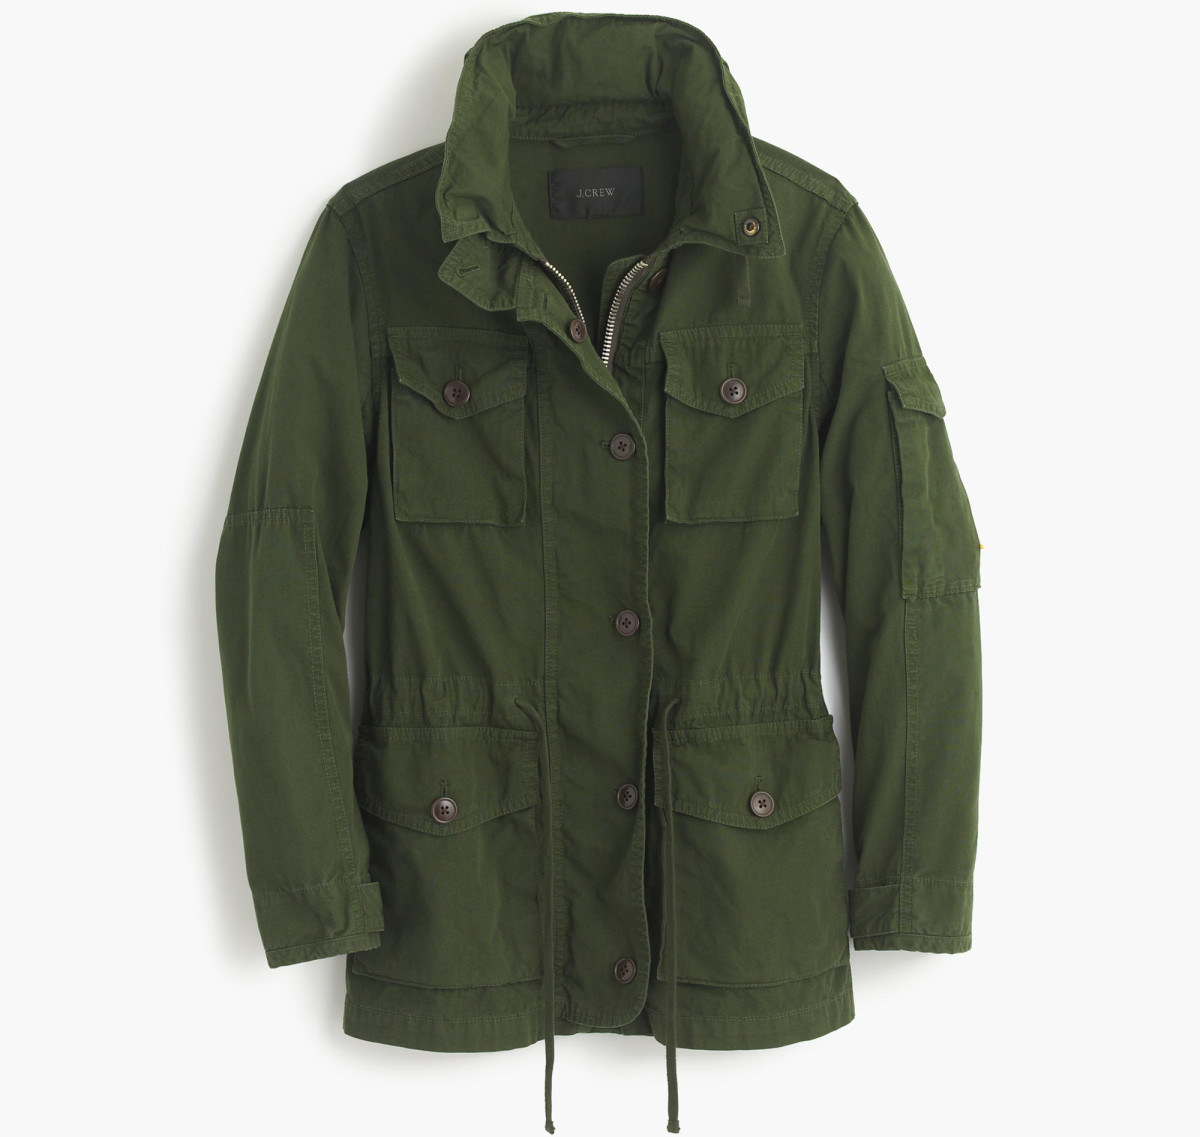 J.Crew field mechanic jacket, $178, available at J.Crew.